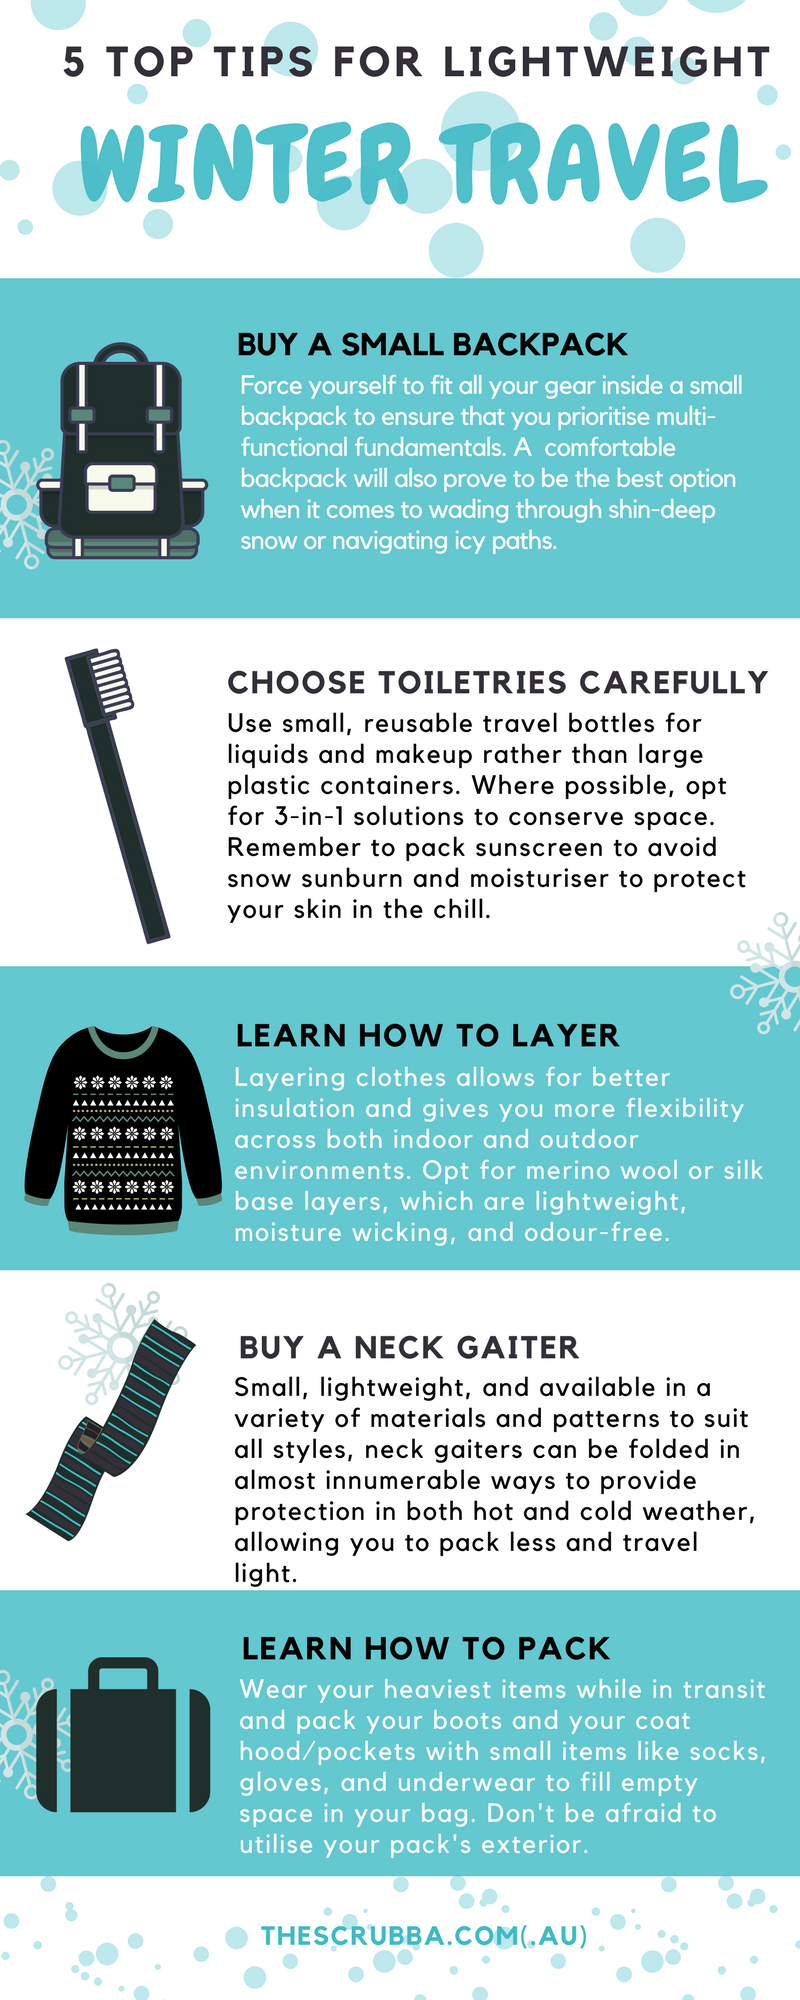 5 Top Tips for Lightweight Winter Travel Infographic